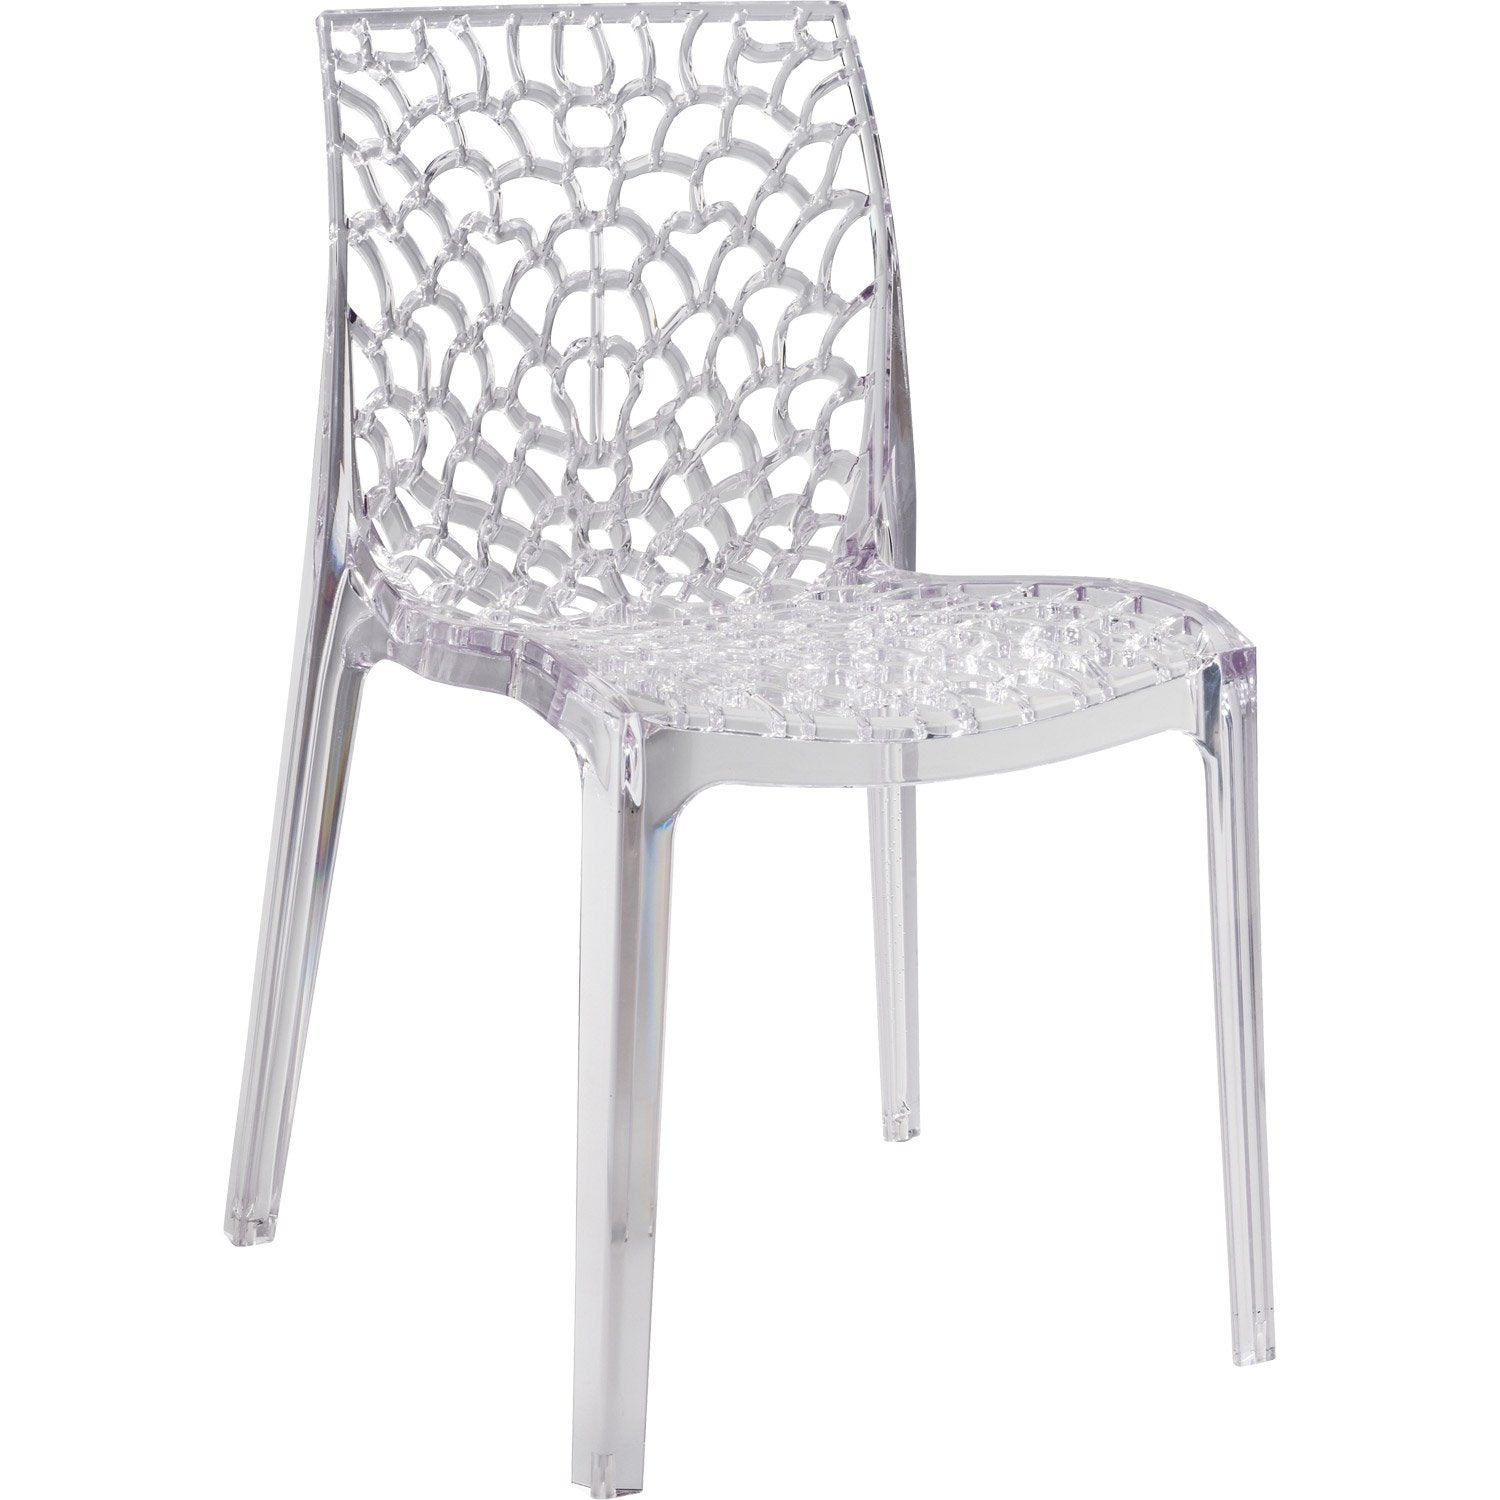 Chaise de jardin en polycarbonate grafik lux transparent for Chaise jardin